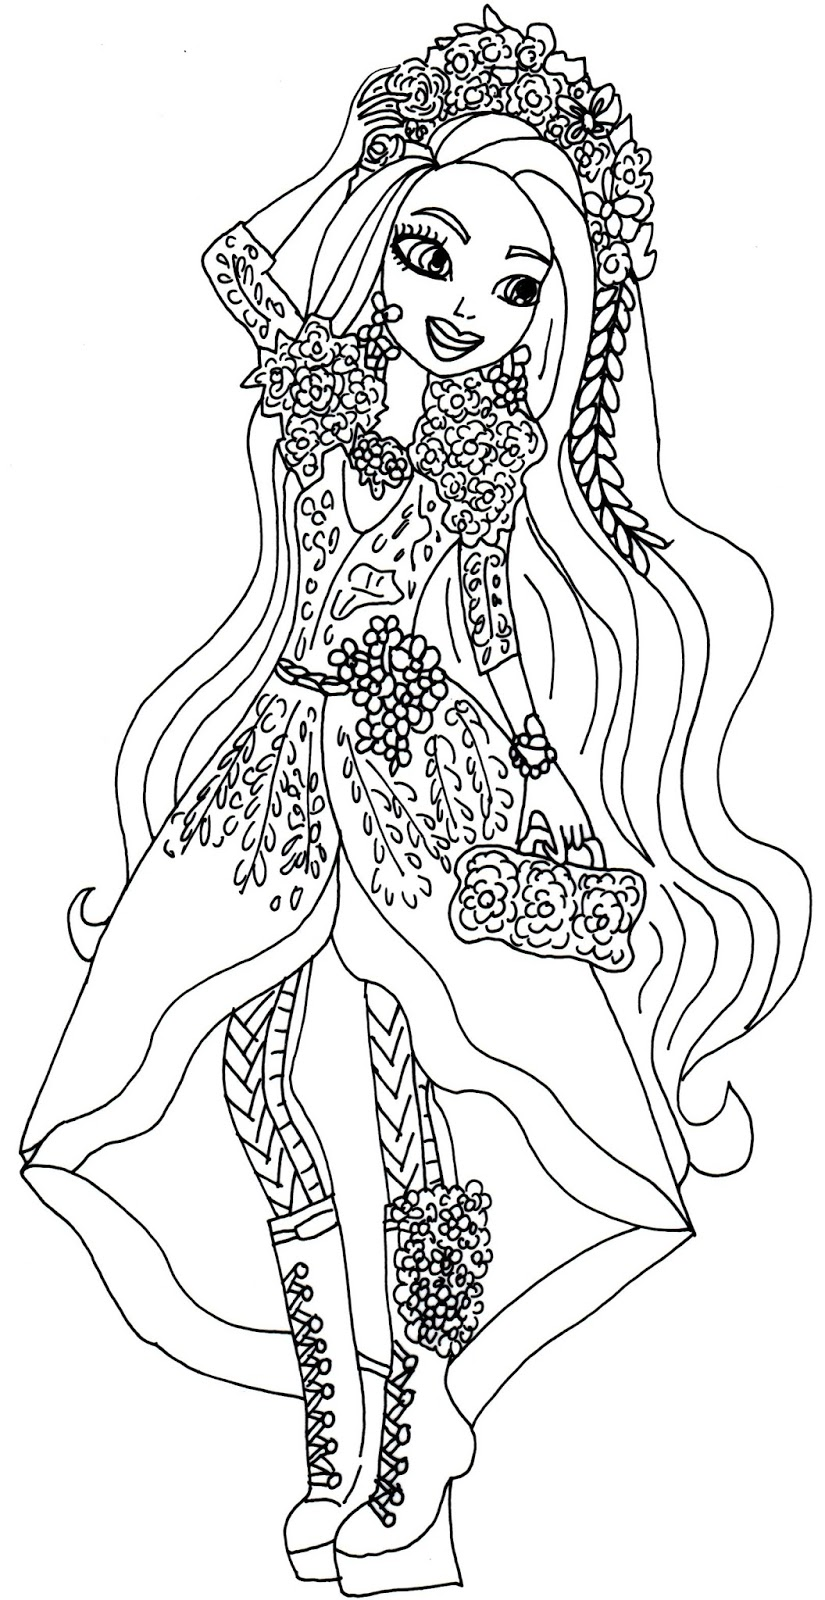 Original Holly Hobbie Coloring Pages Thanhhunggroup Info